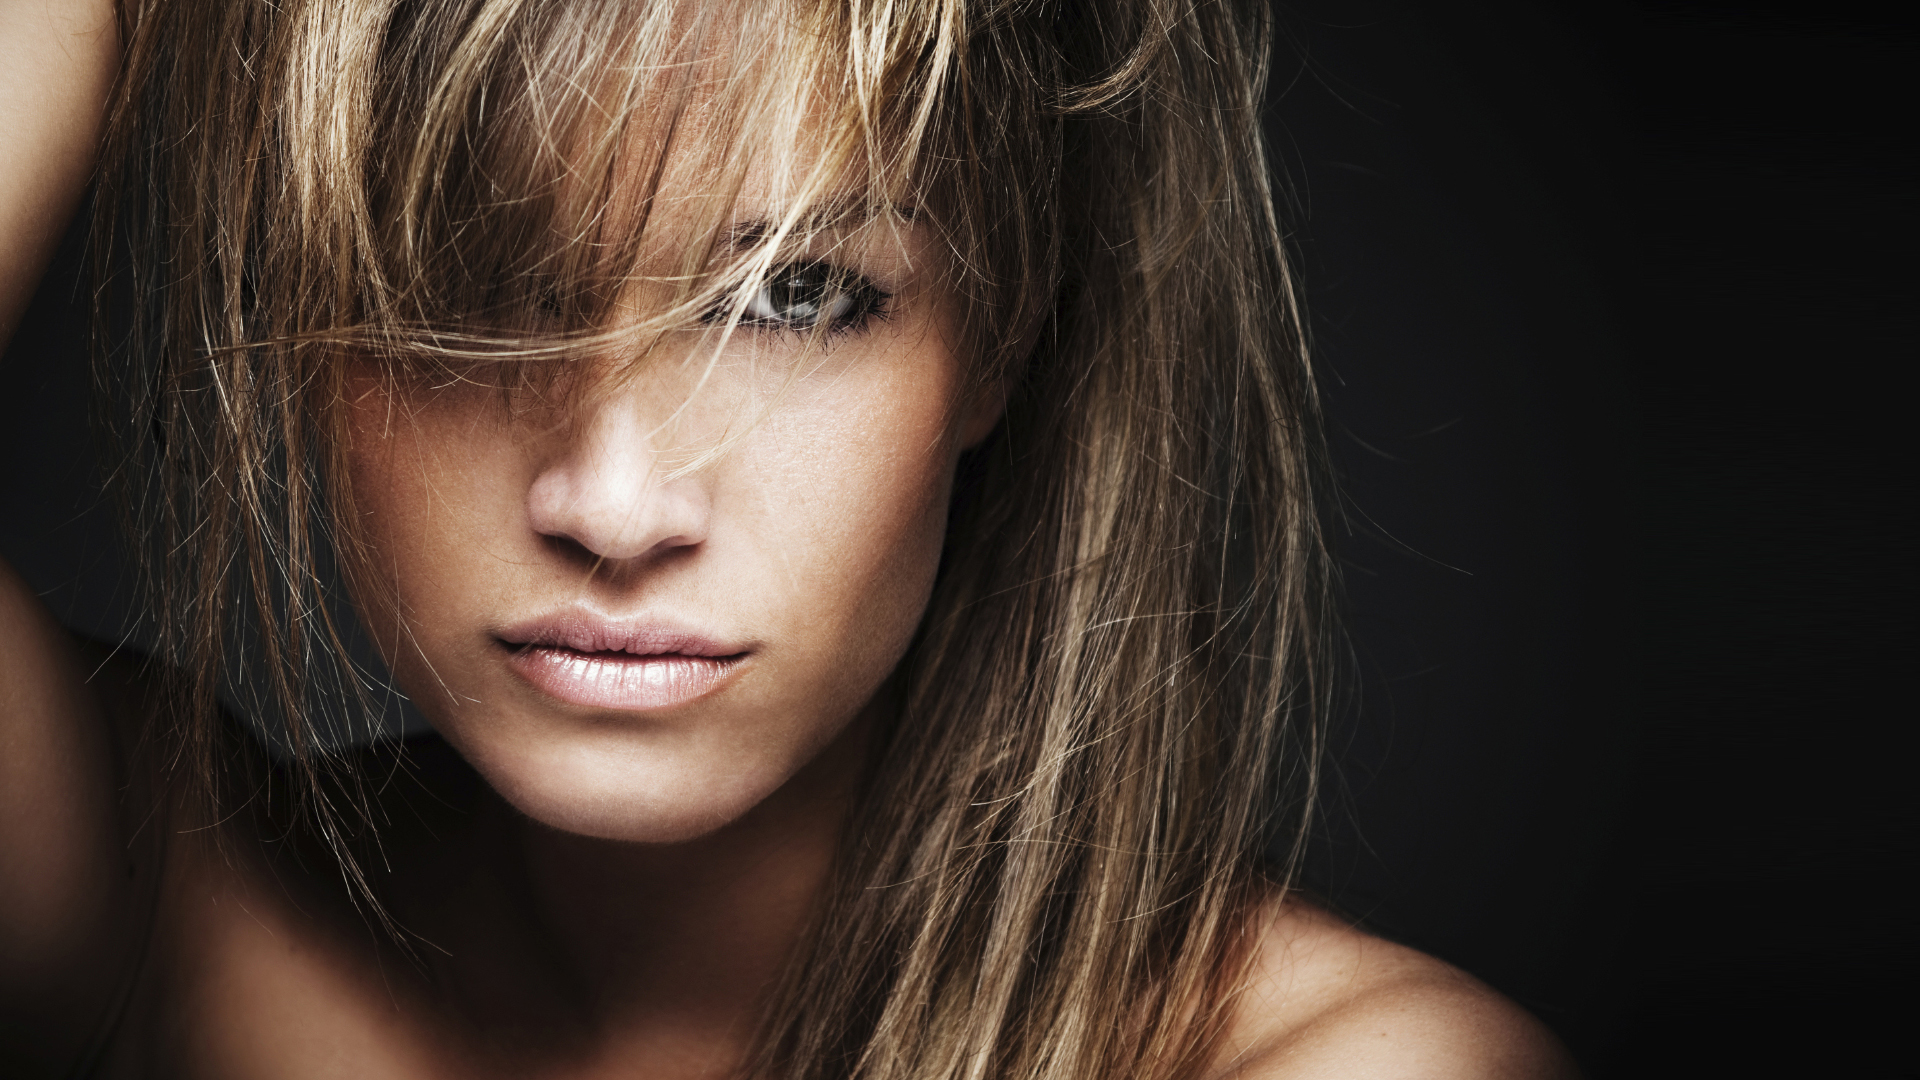 hair style img anthony jones hair salons hair style selection 1073 9233